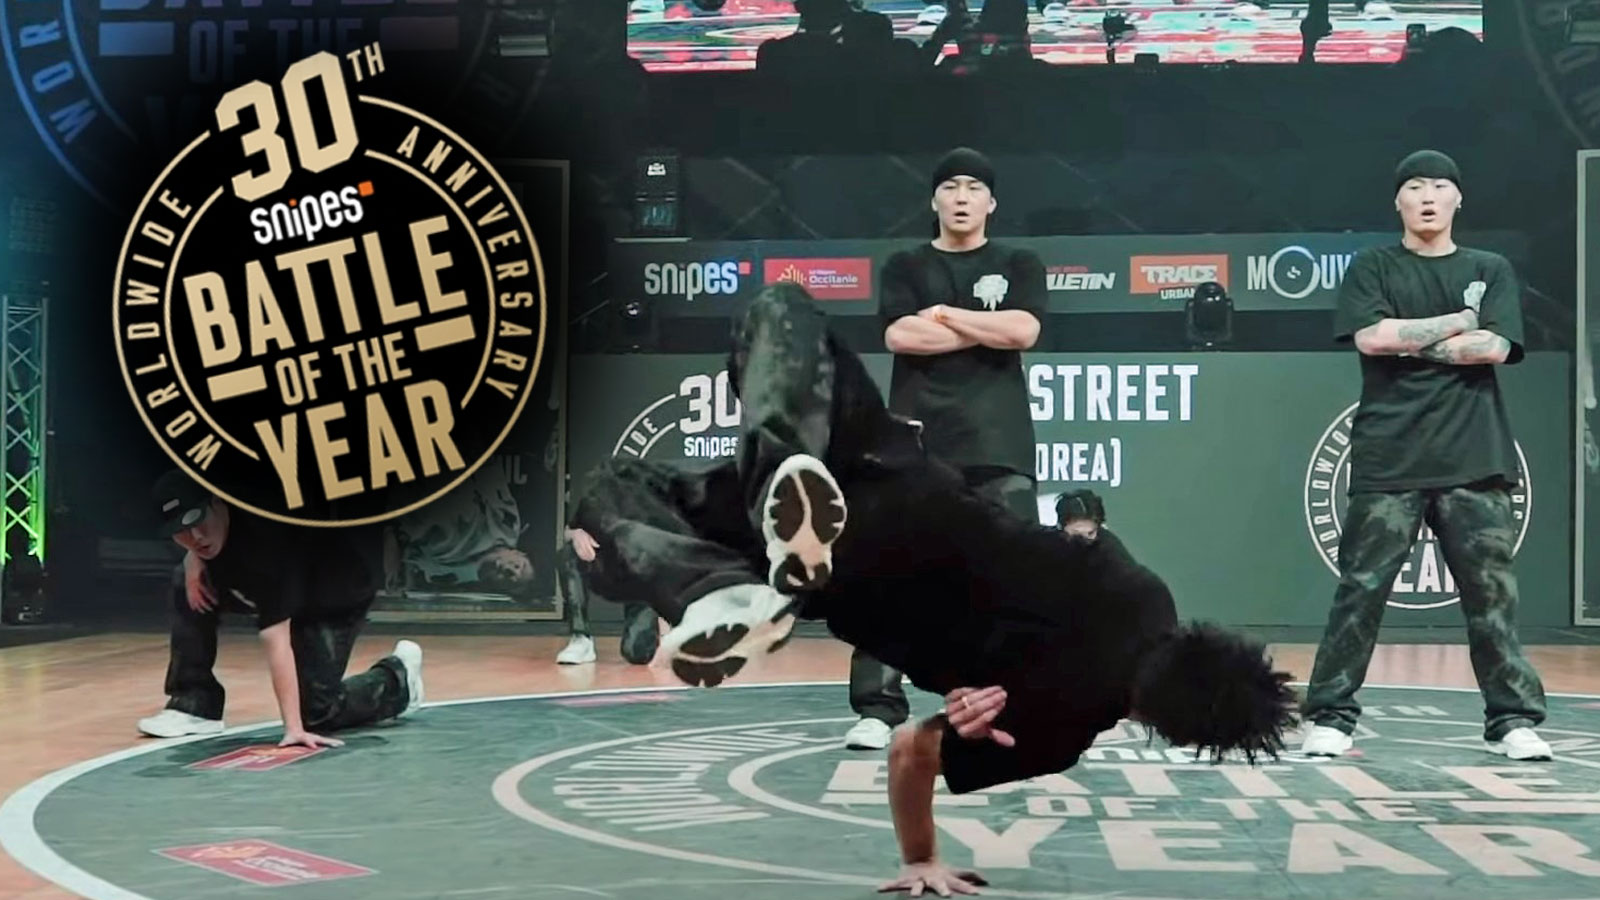 SNIPES Battle Of The Year 2019 – Aftermovie